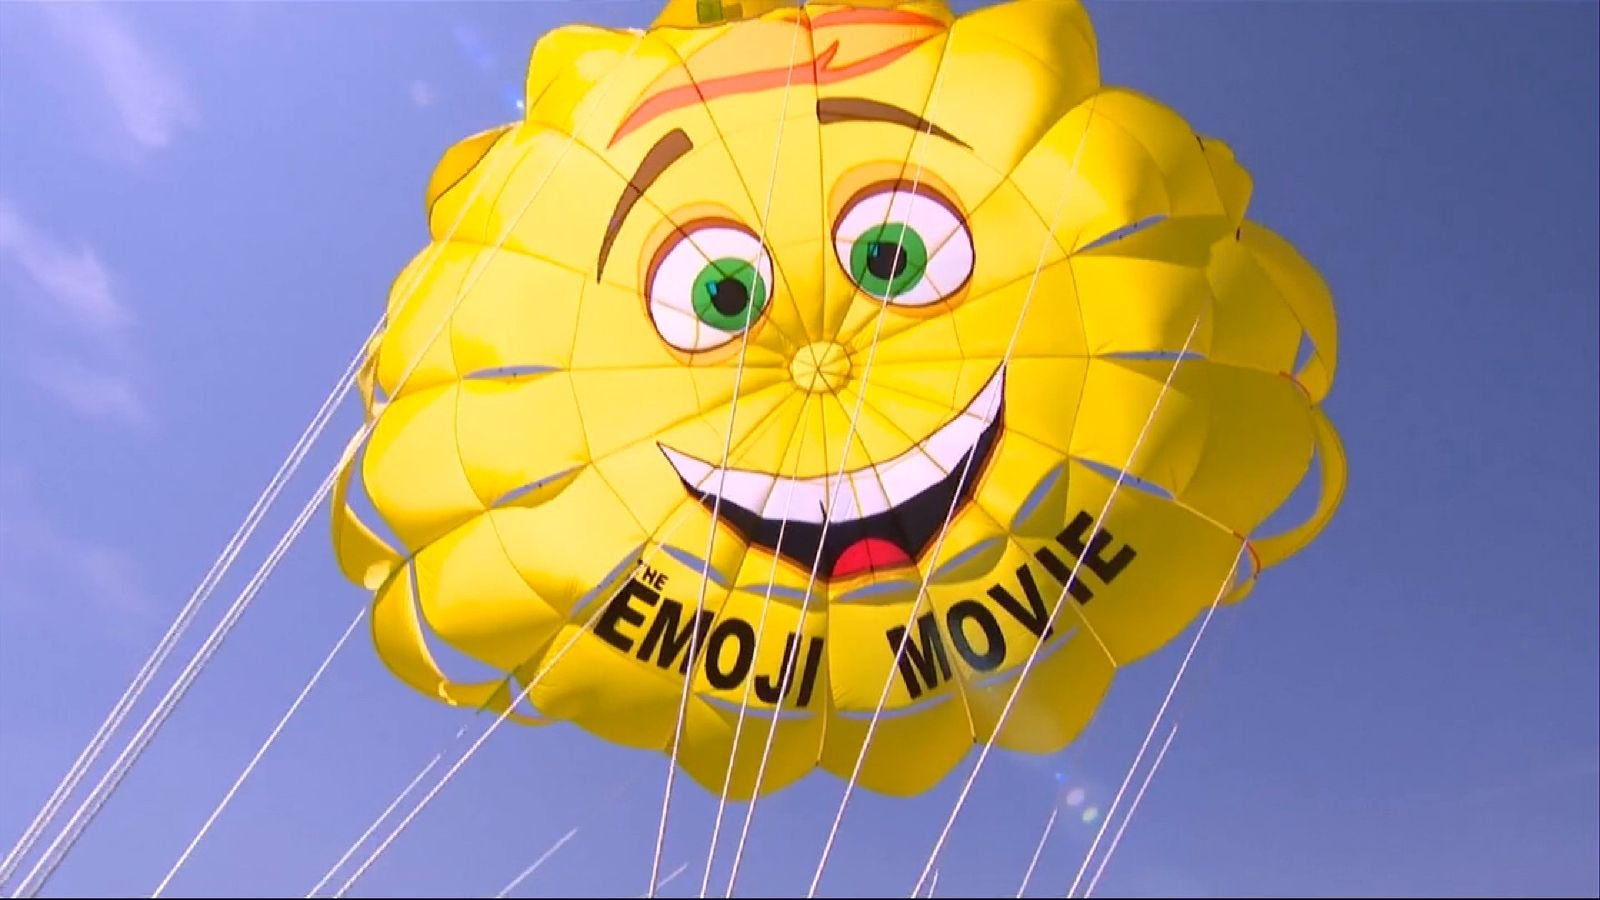 Emoji movie premiere at cannes